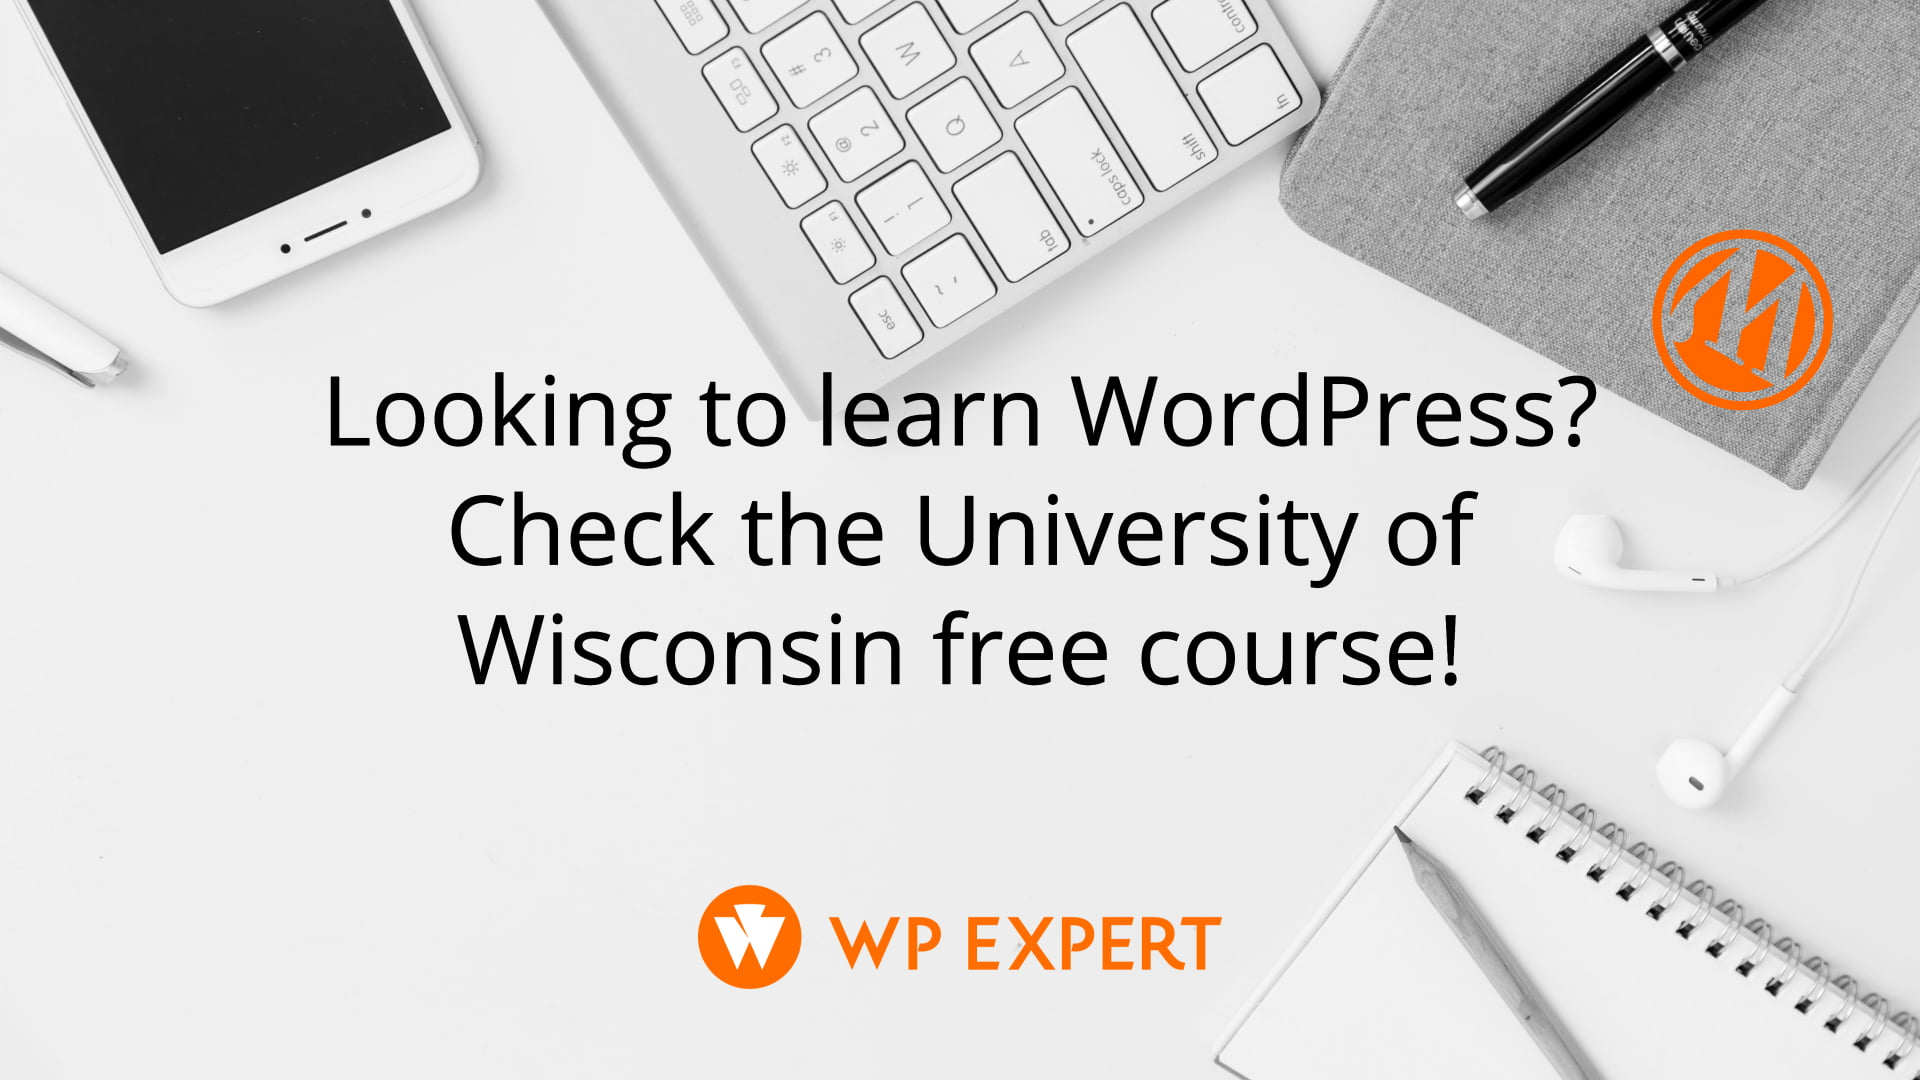 Looking to learn WordPress? Check the University of Wisconsin free course!